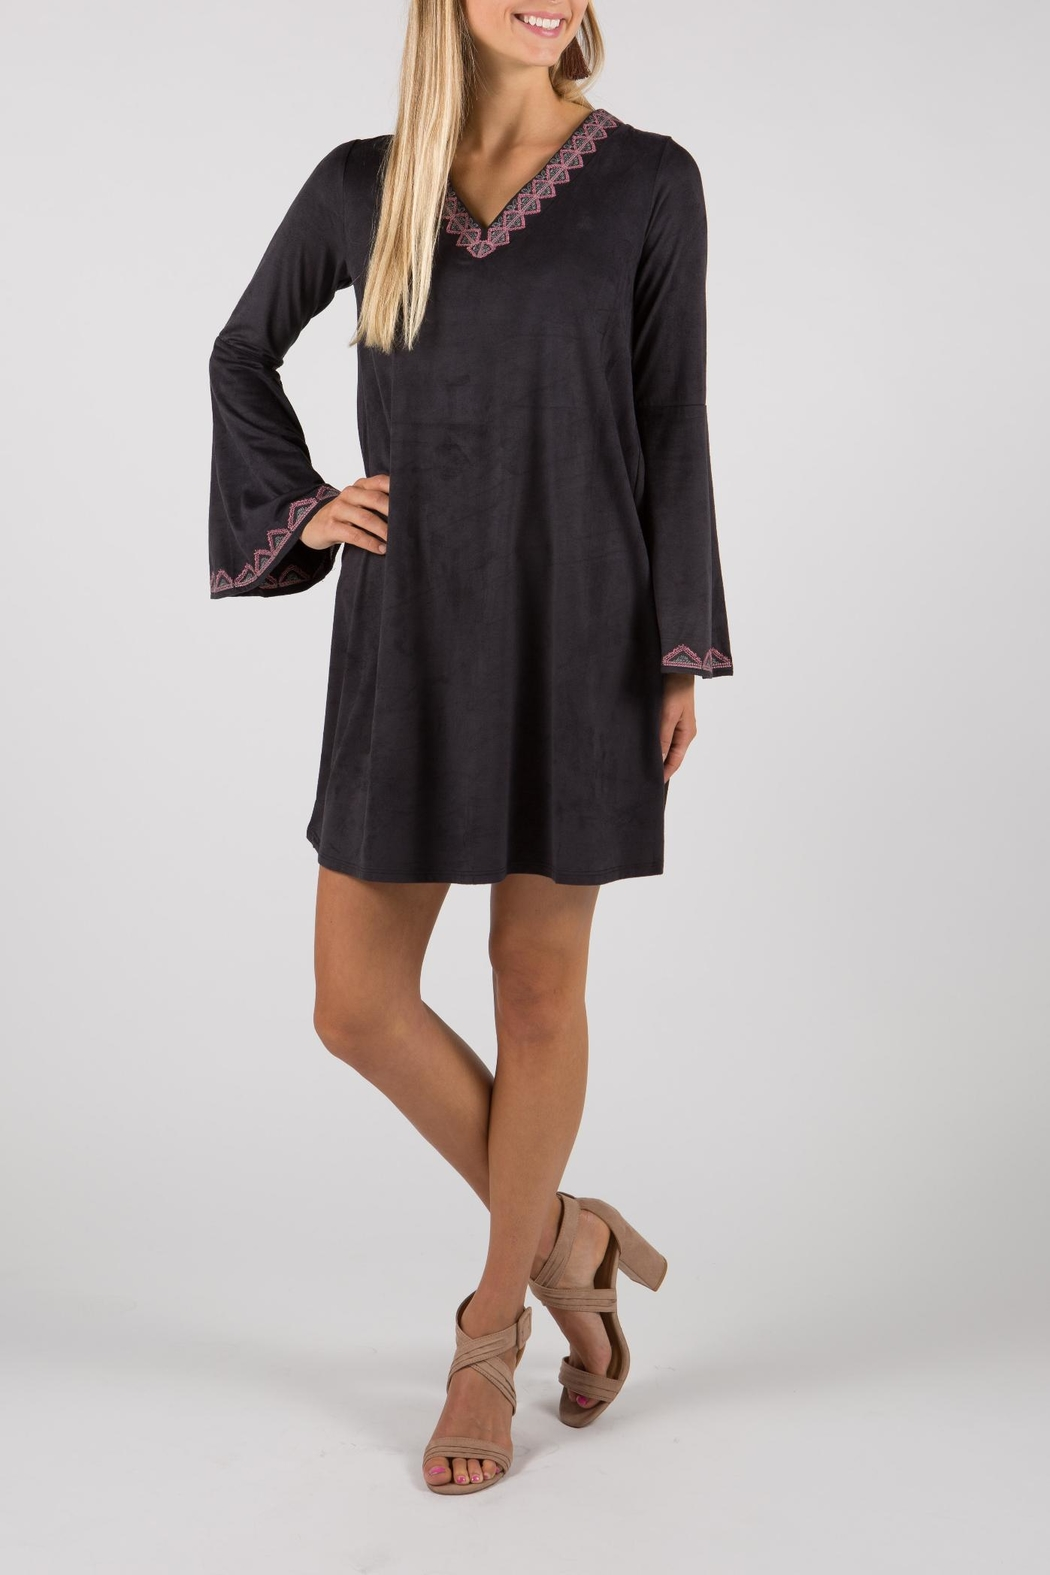 THML Clothing Bell Sleeve Dress - Main Image